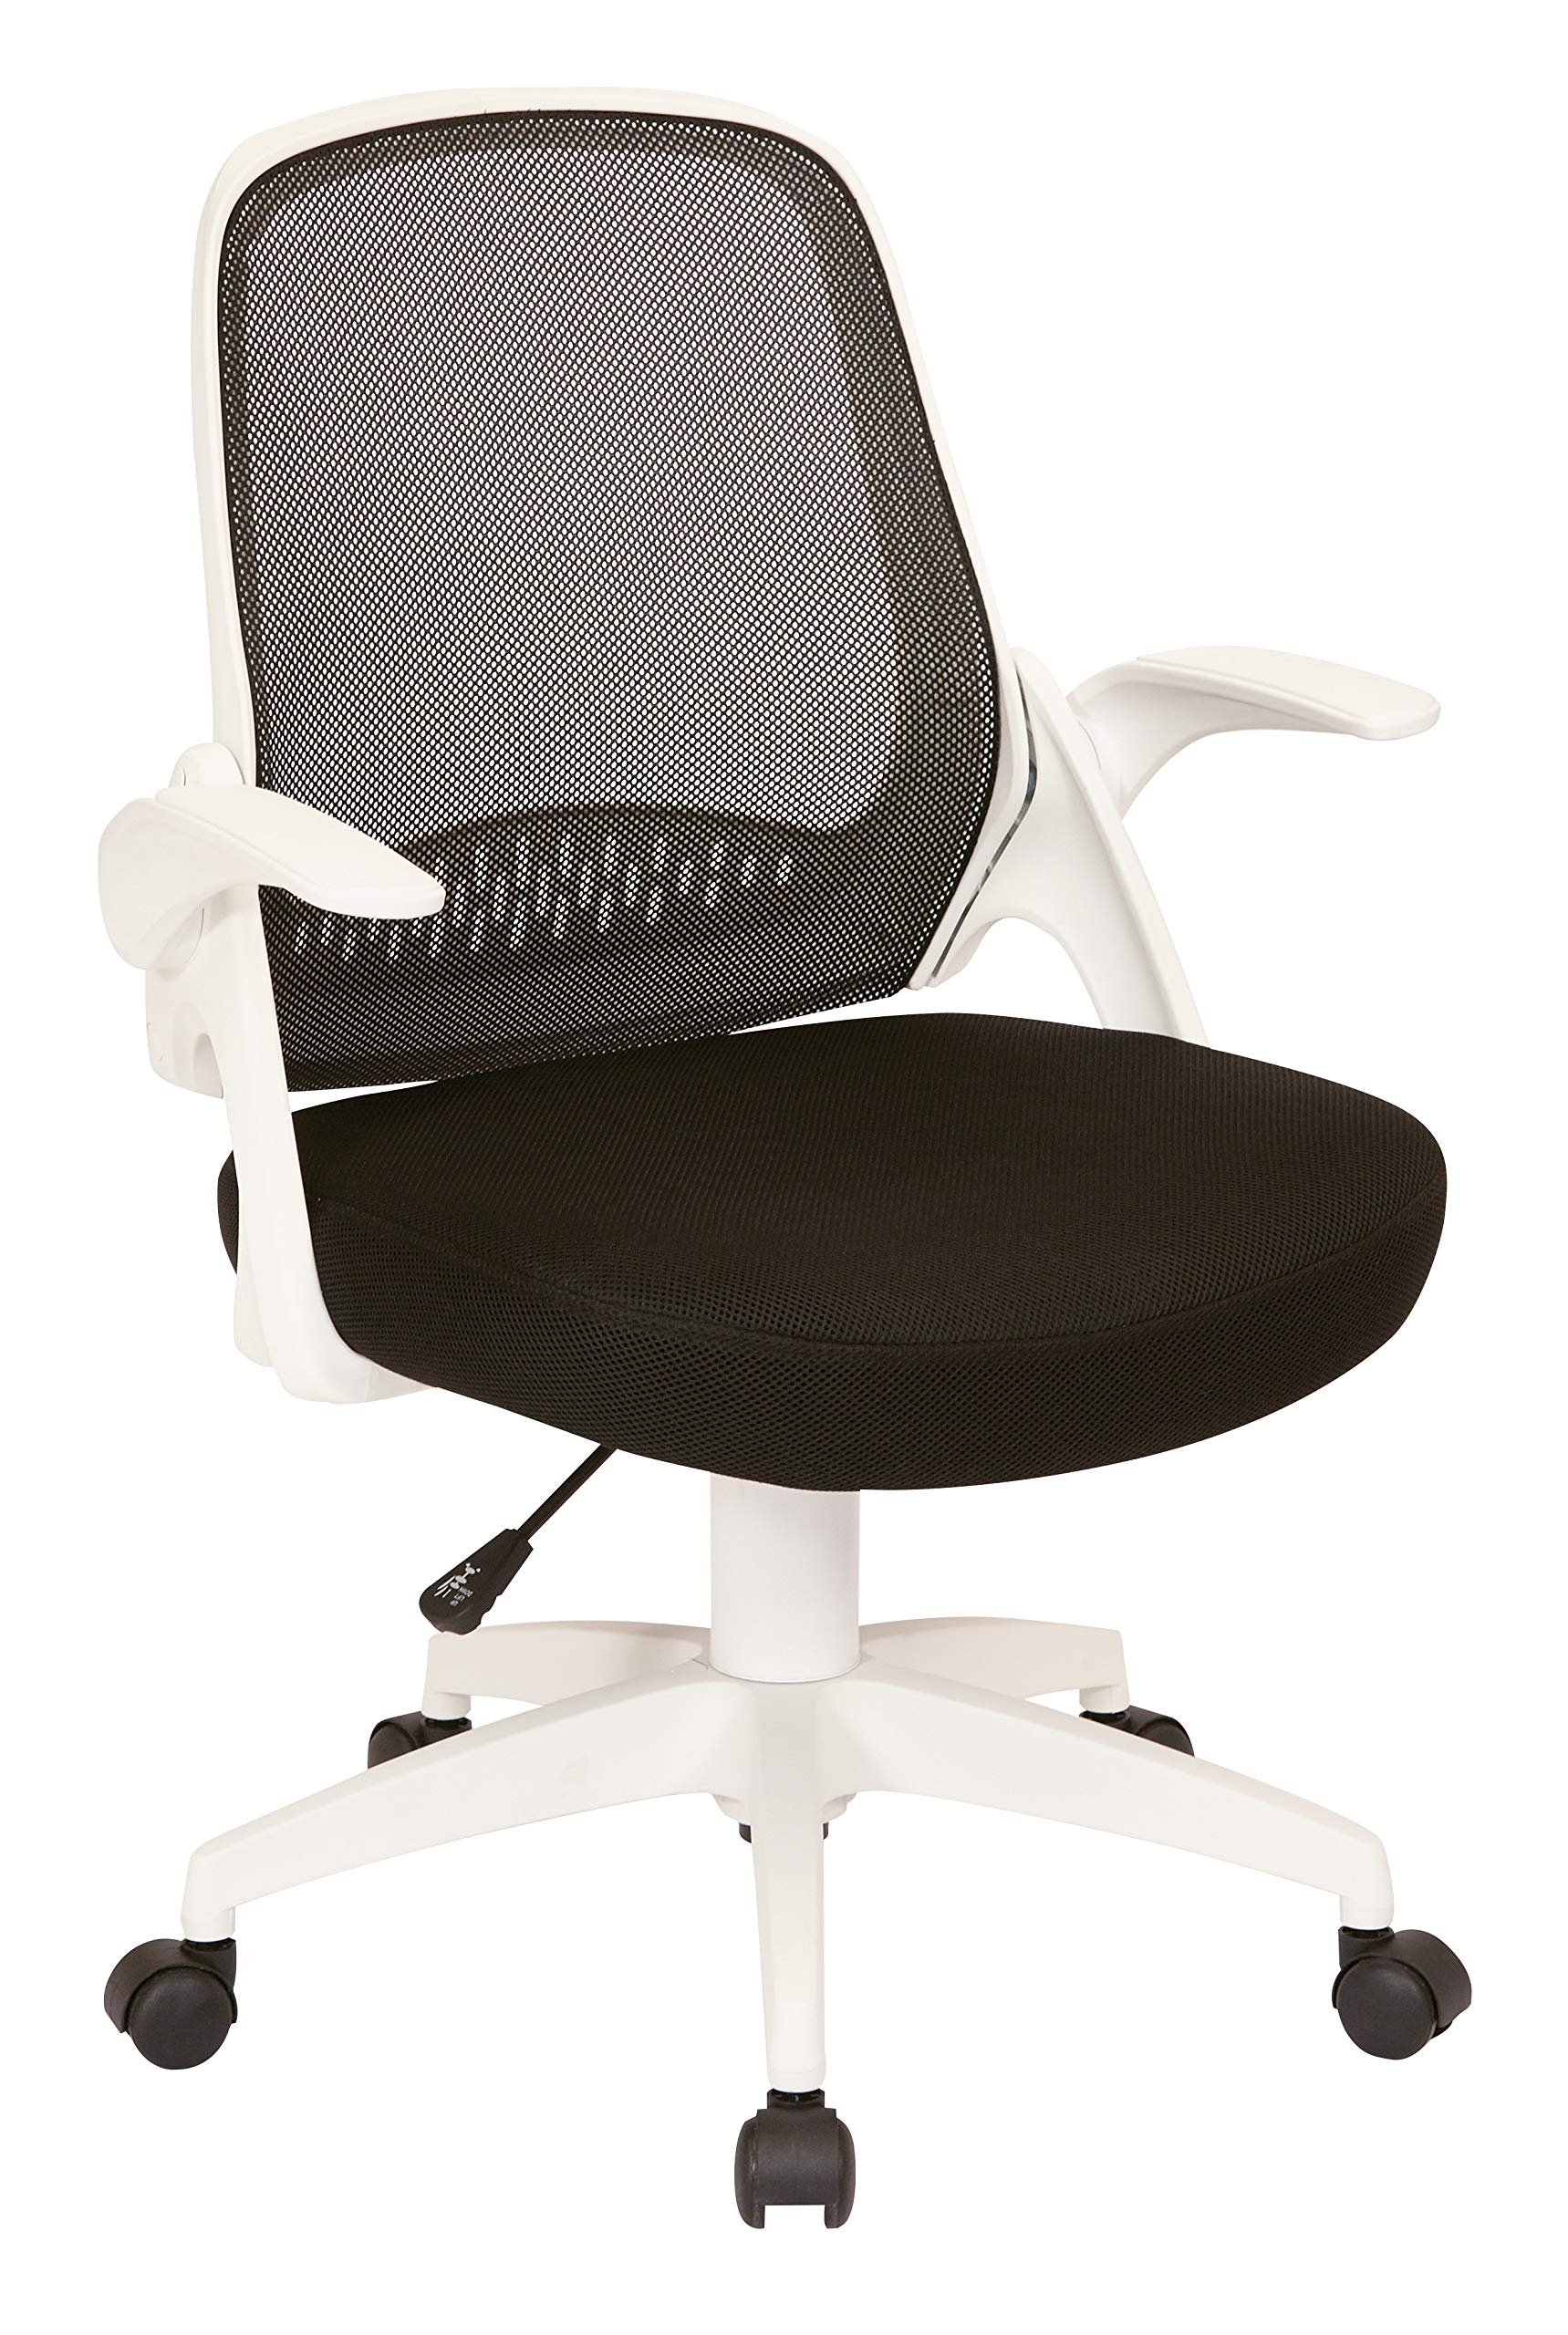 AVE SIX Jackson Mesh Back and Padded Mesh Seat Office Chair with Folding Arms and White Accents, Black